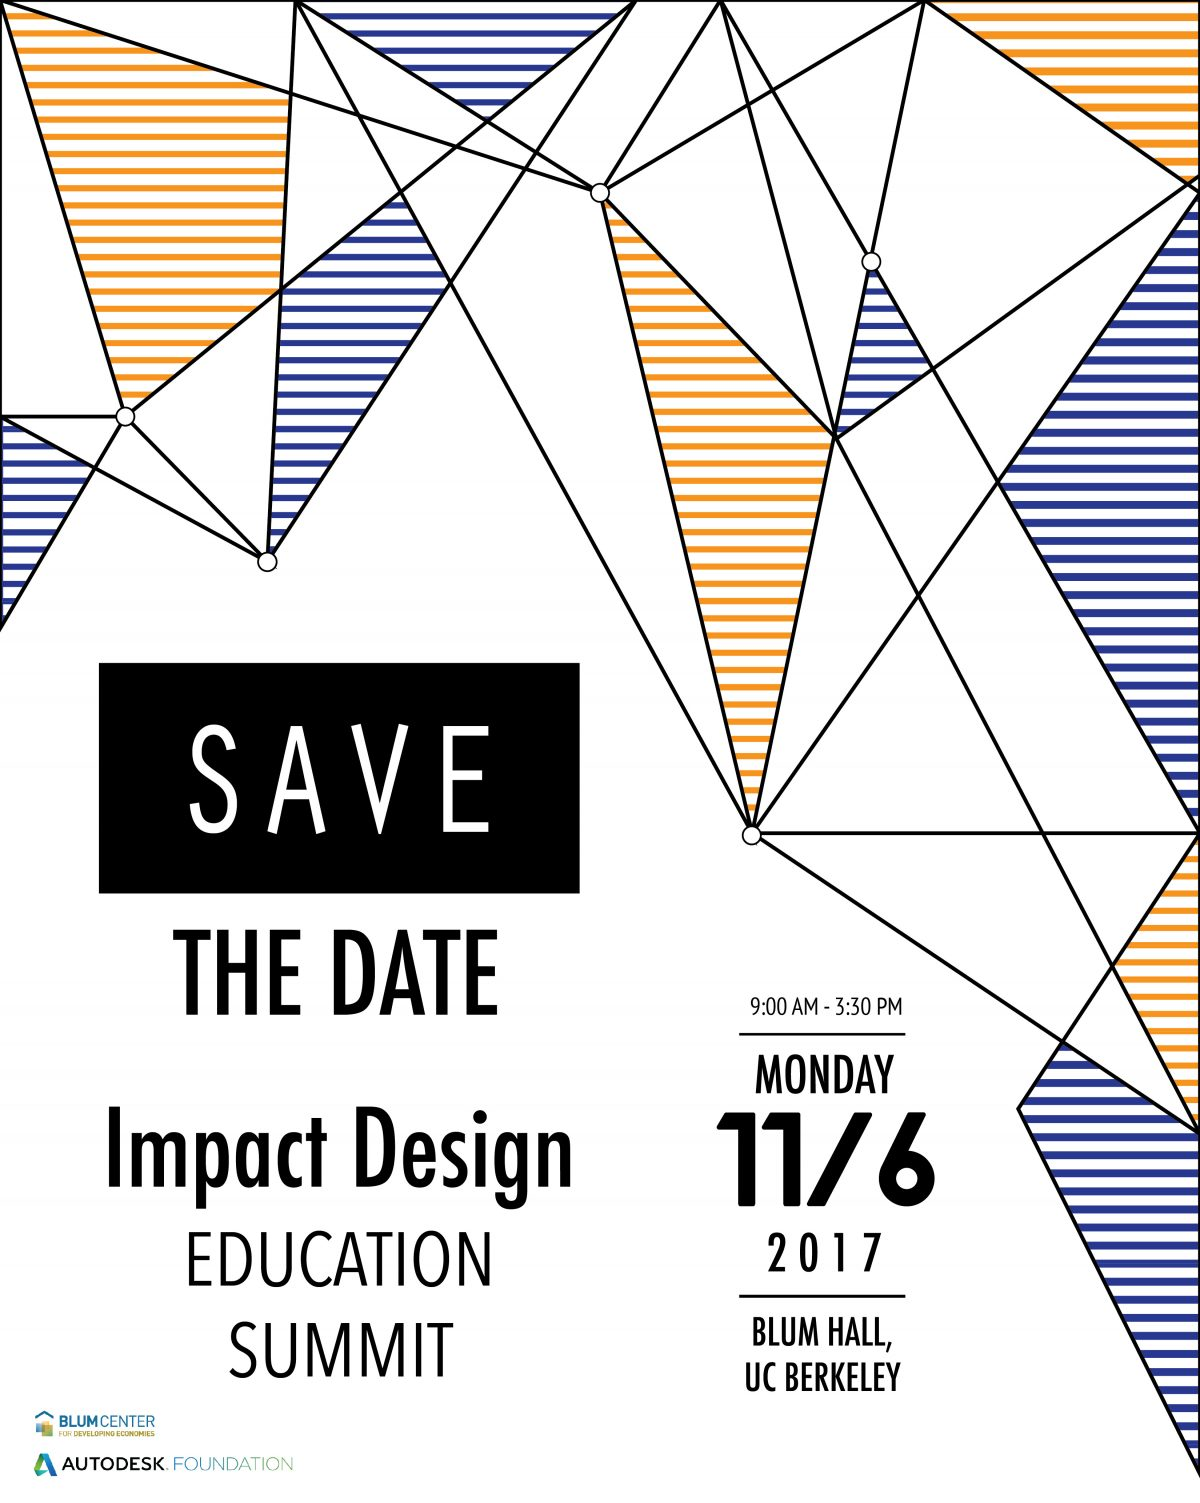 Save the Date: Blum Center to Host Impact Design Education Summit